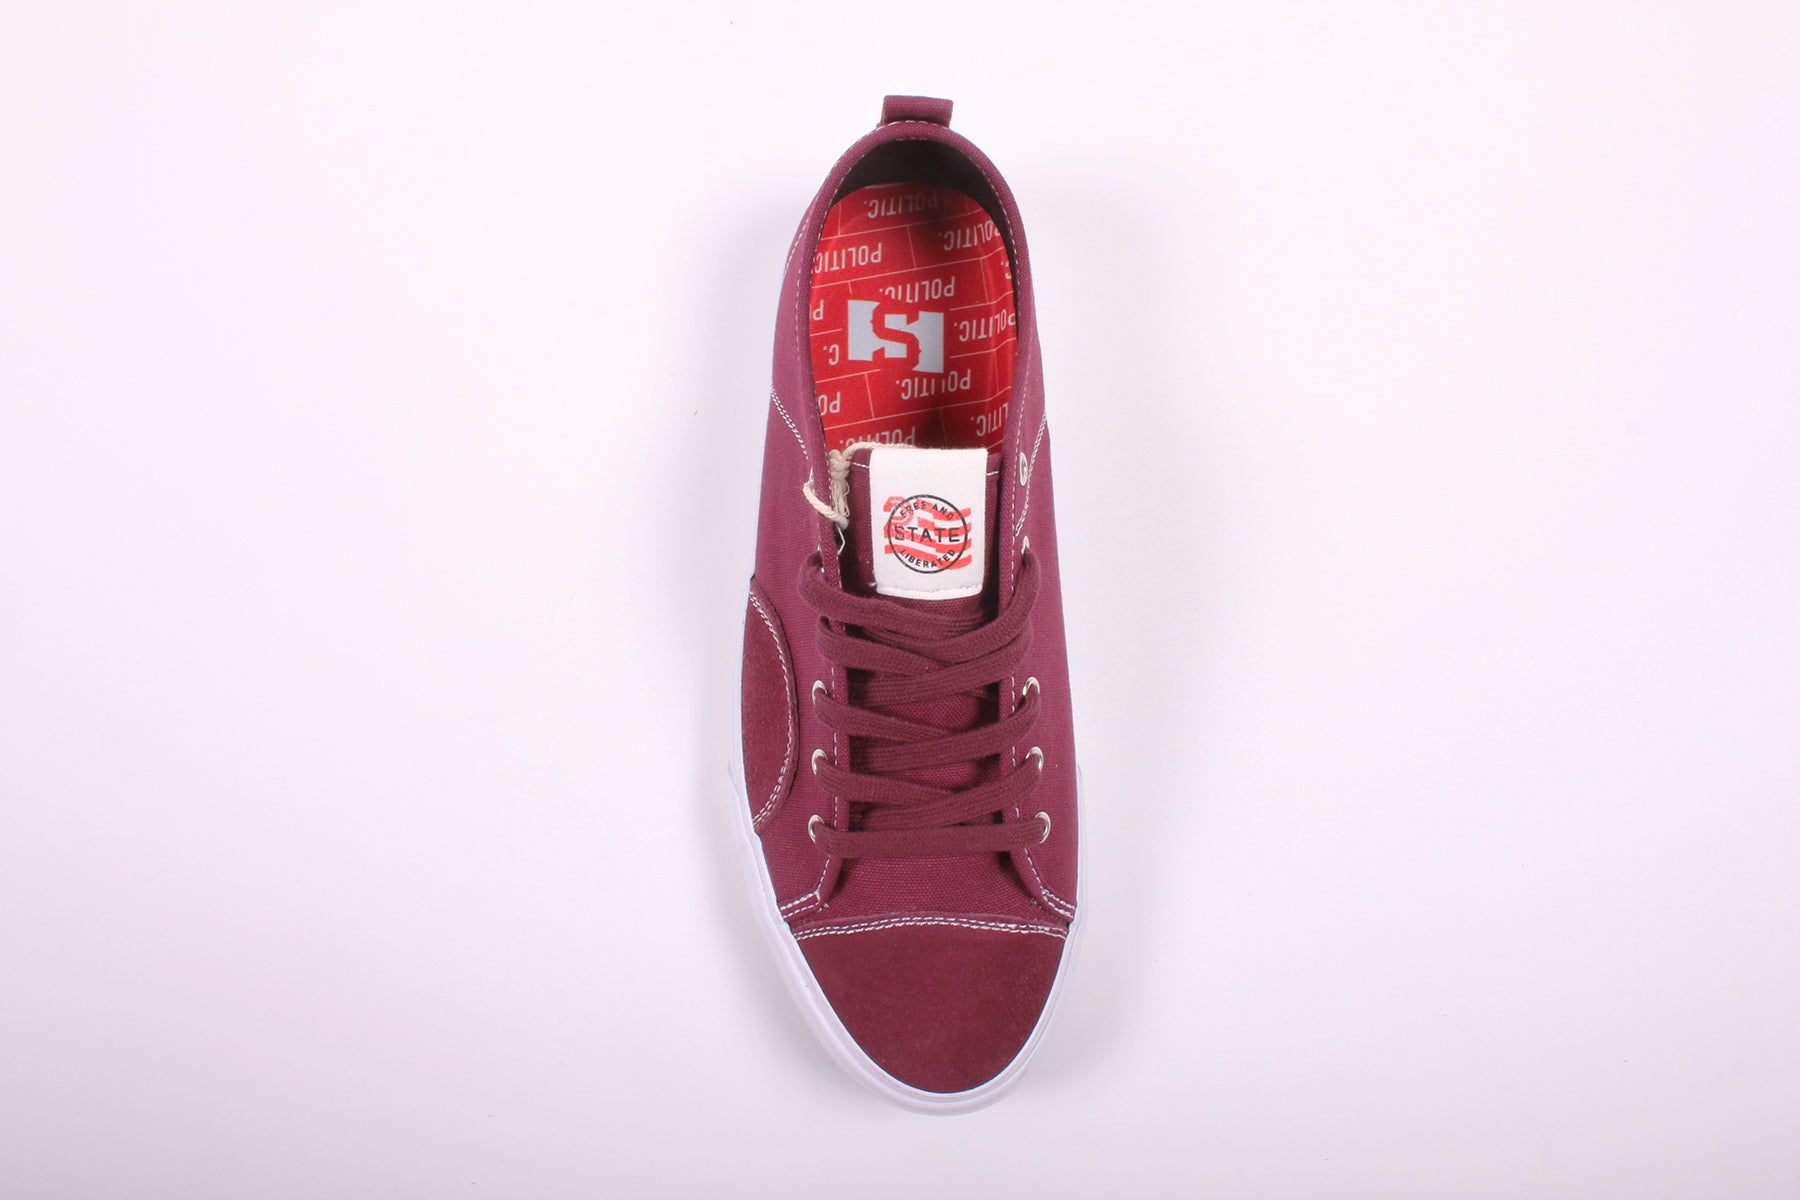 State Harlem x Politic Black Cherry Canvas/Suede